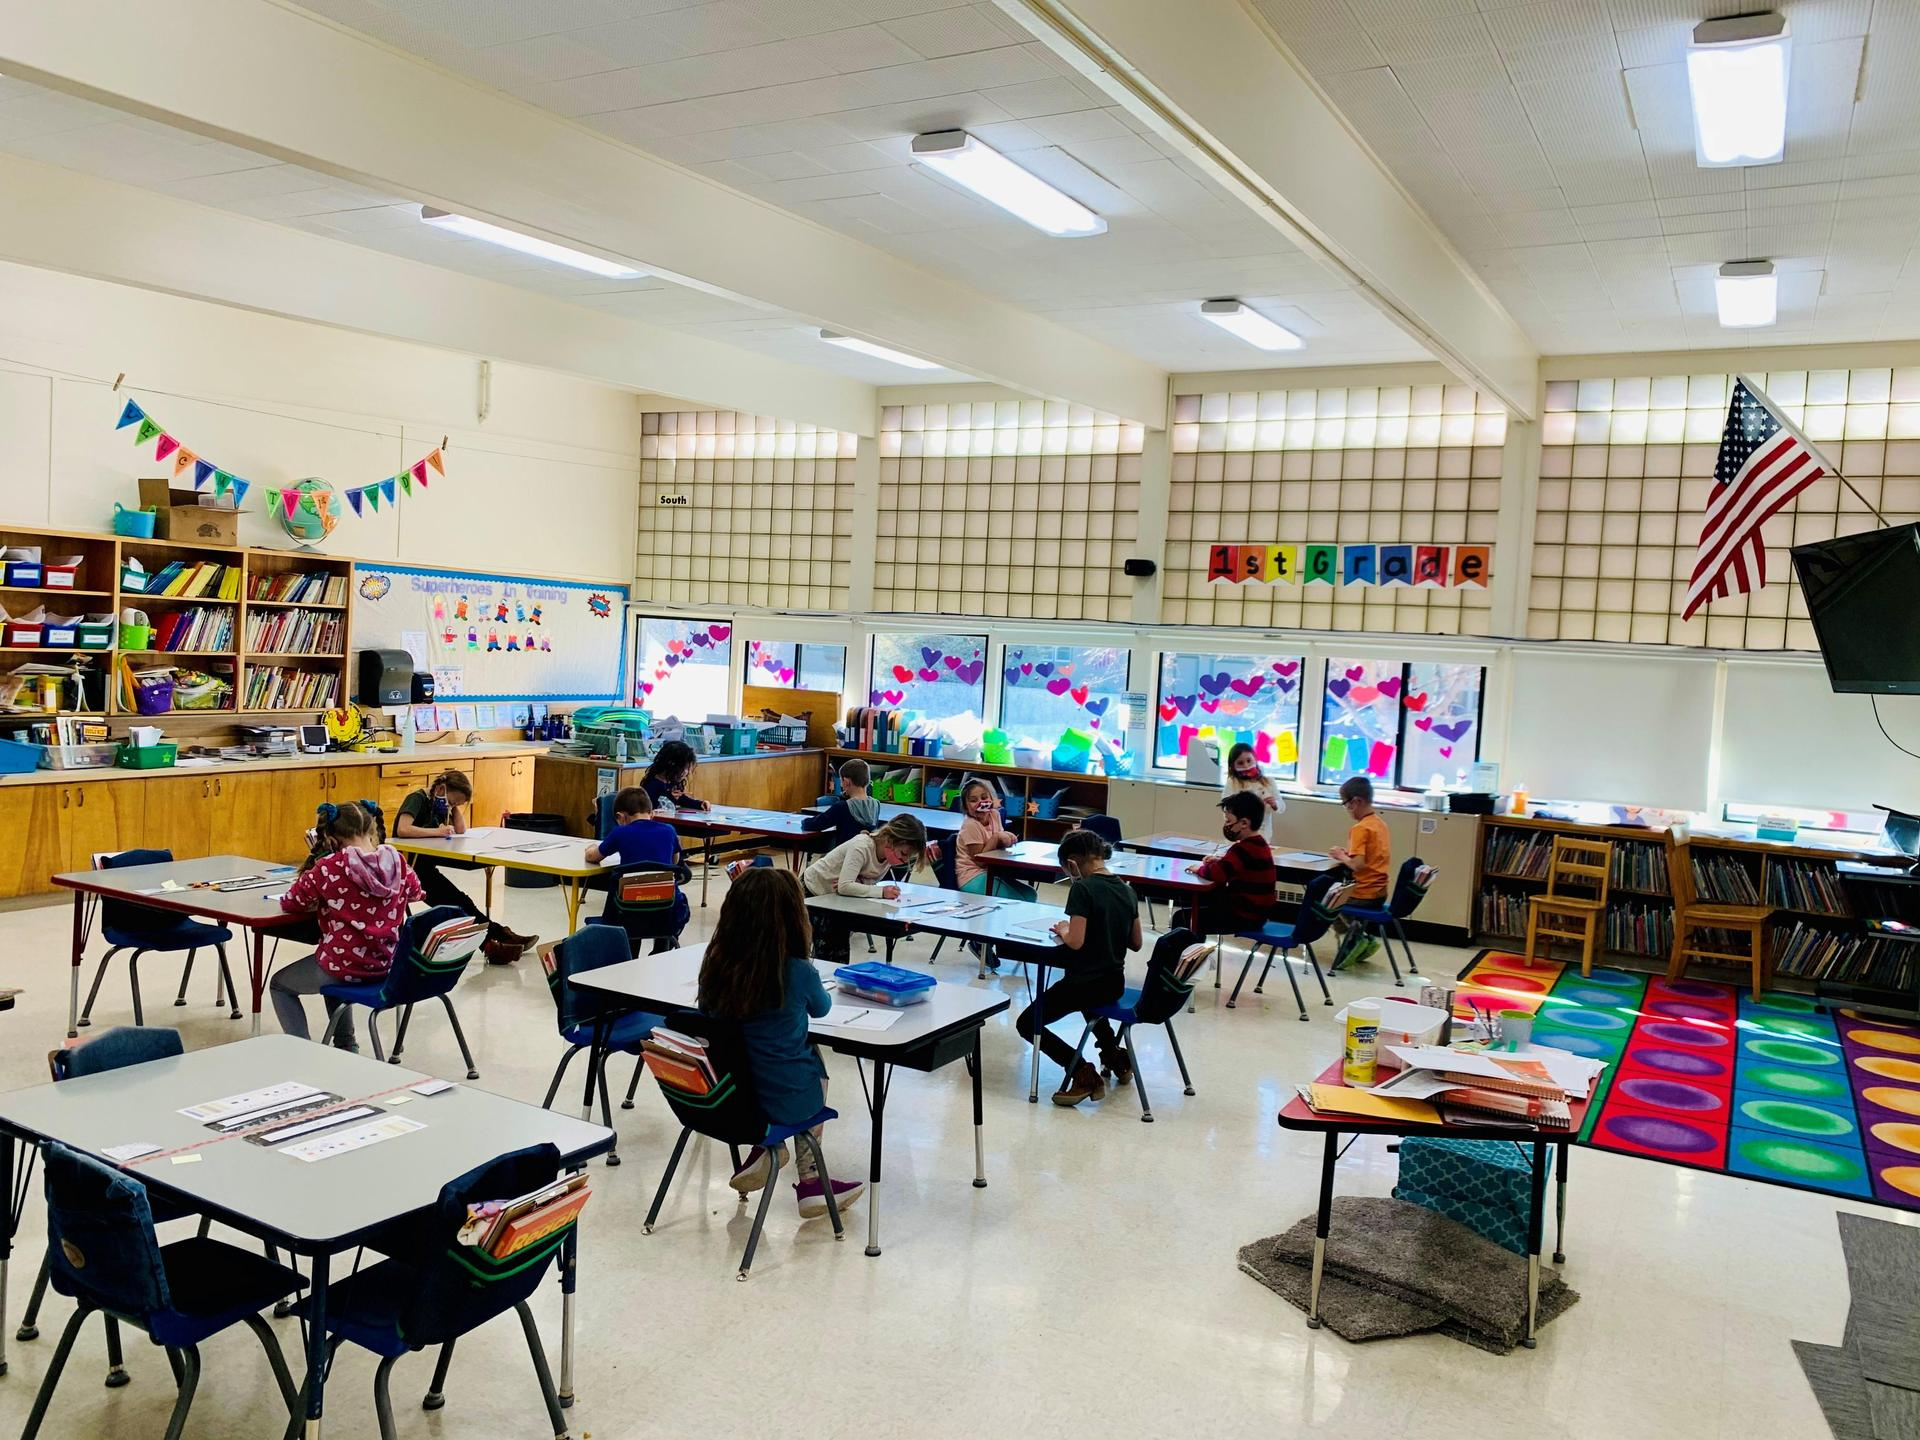 Students sitting at desks in classroom